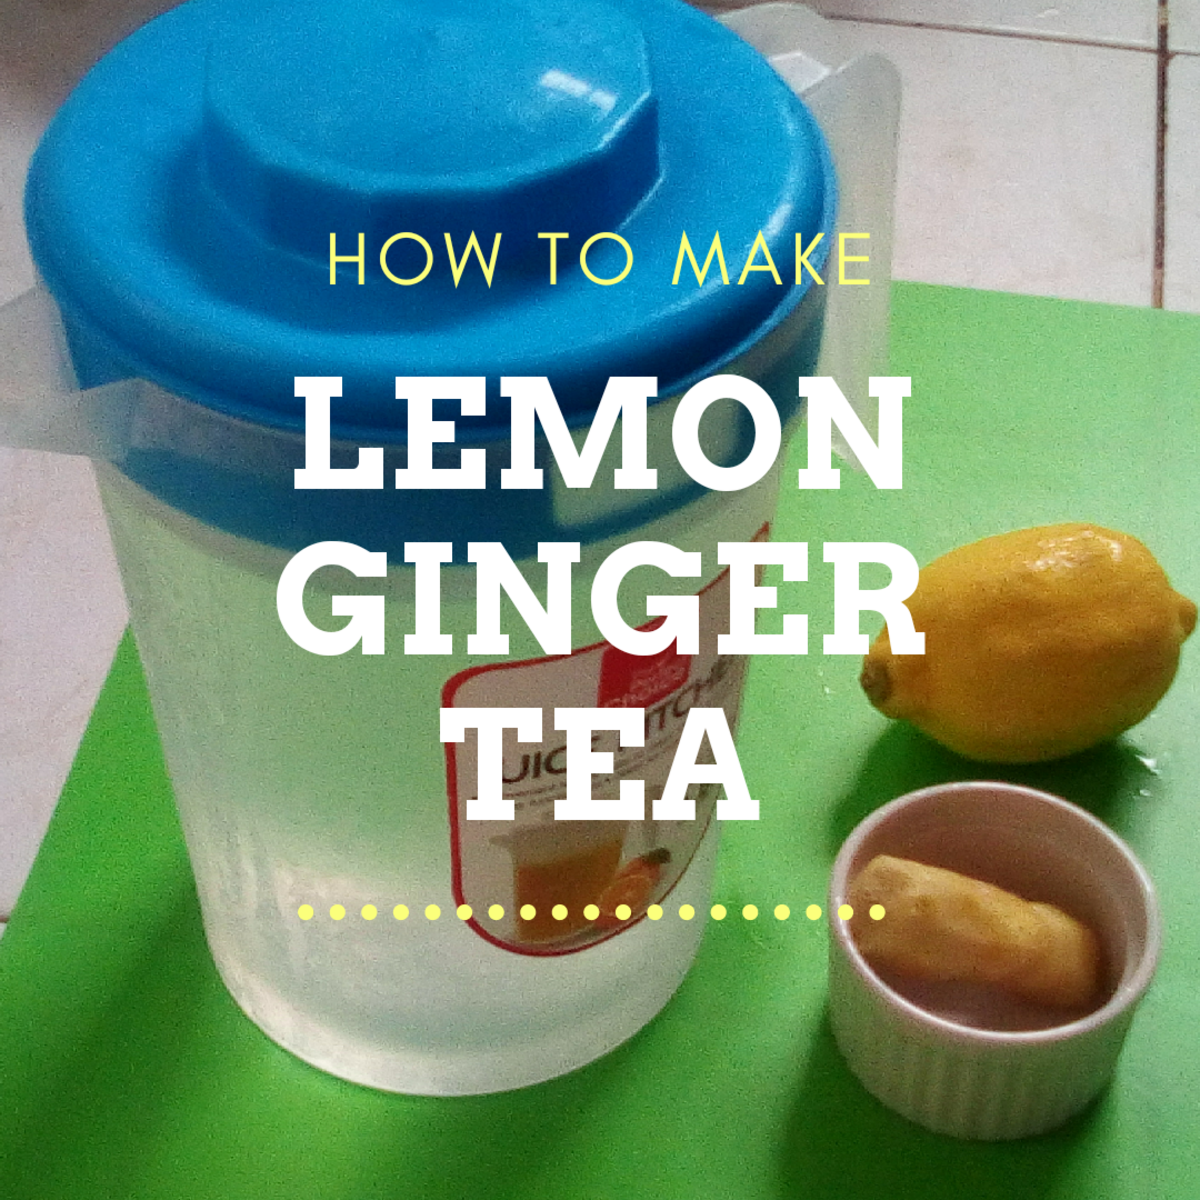 How to Make Lemon Ginger Tea